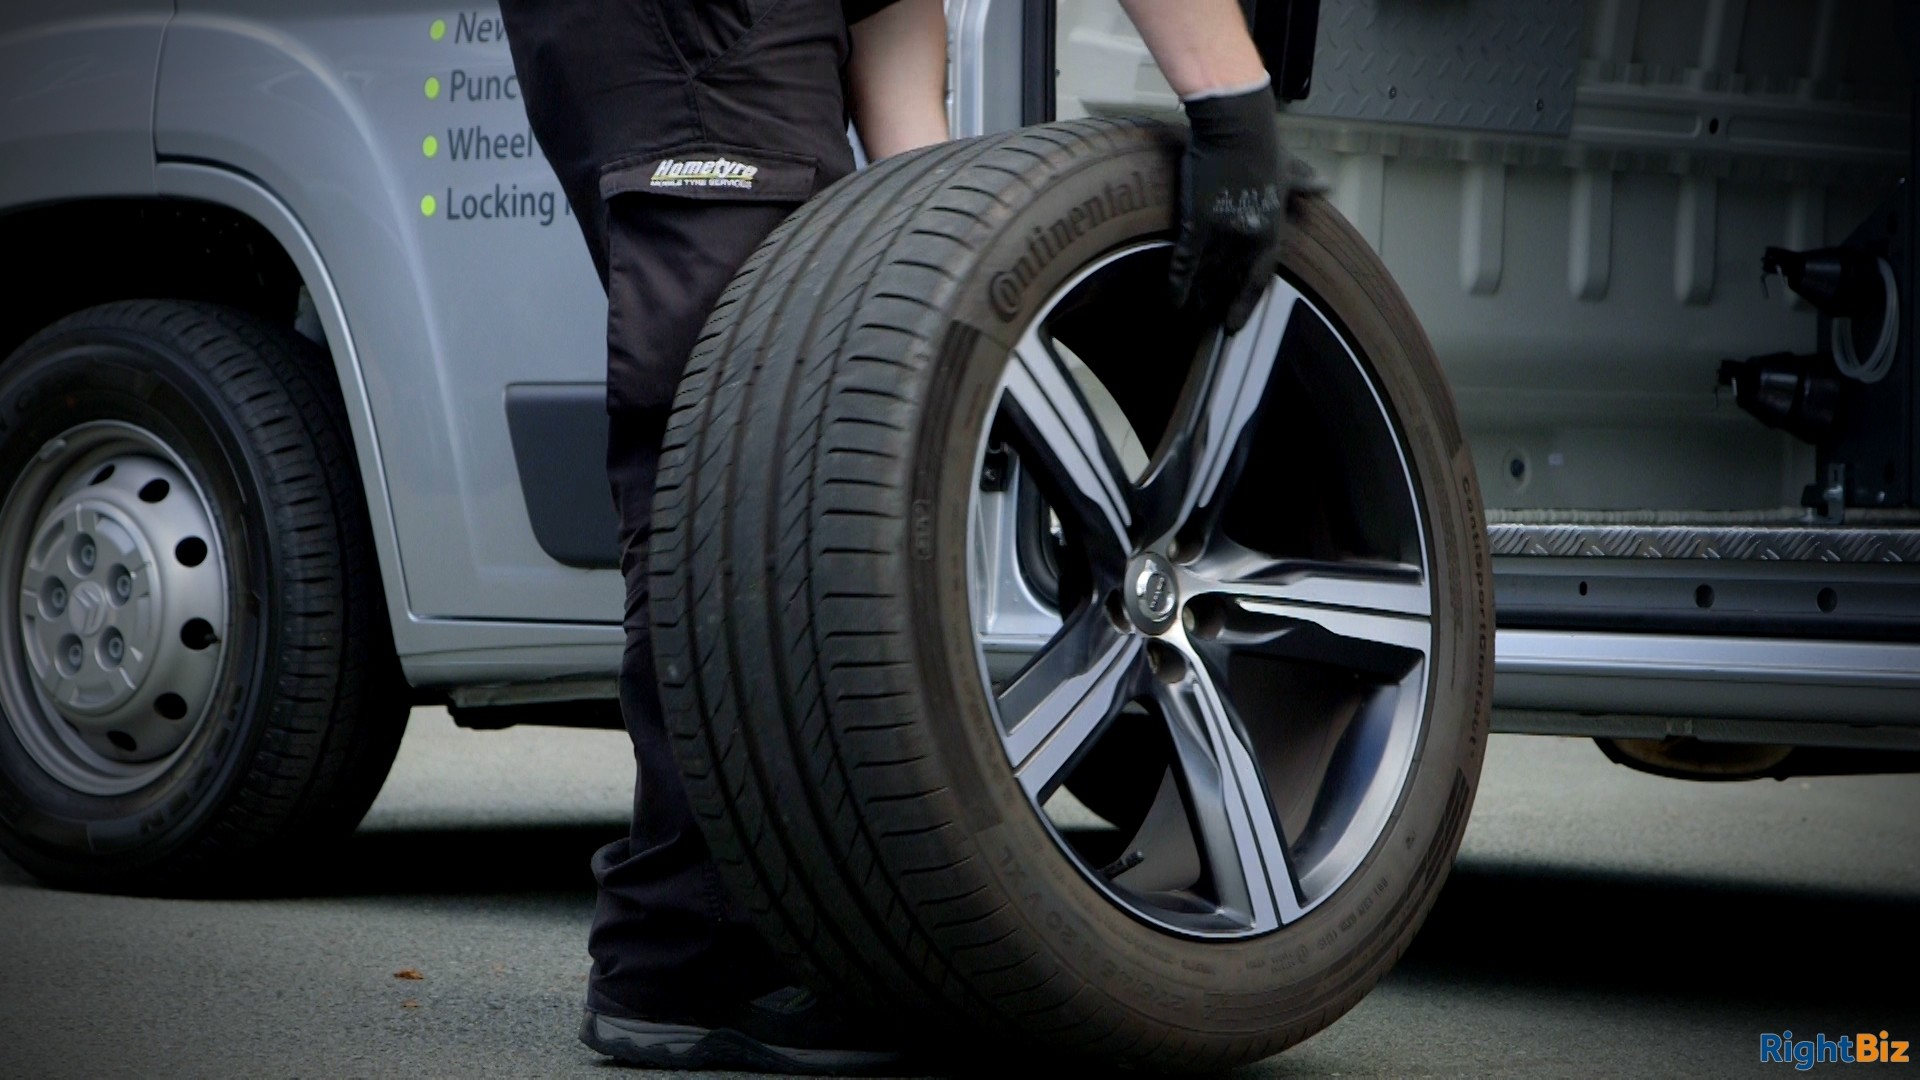 Well established mobile tyre service franchised business covering a wide area of North Hants. - Image 15